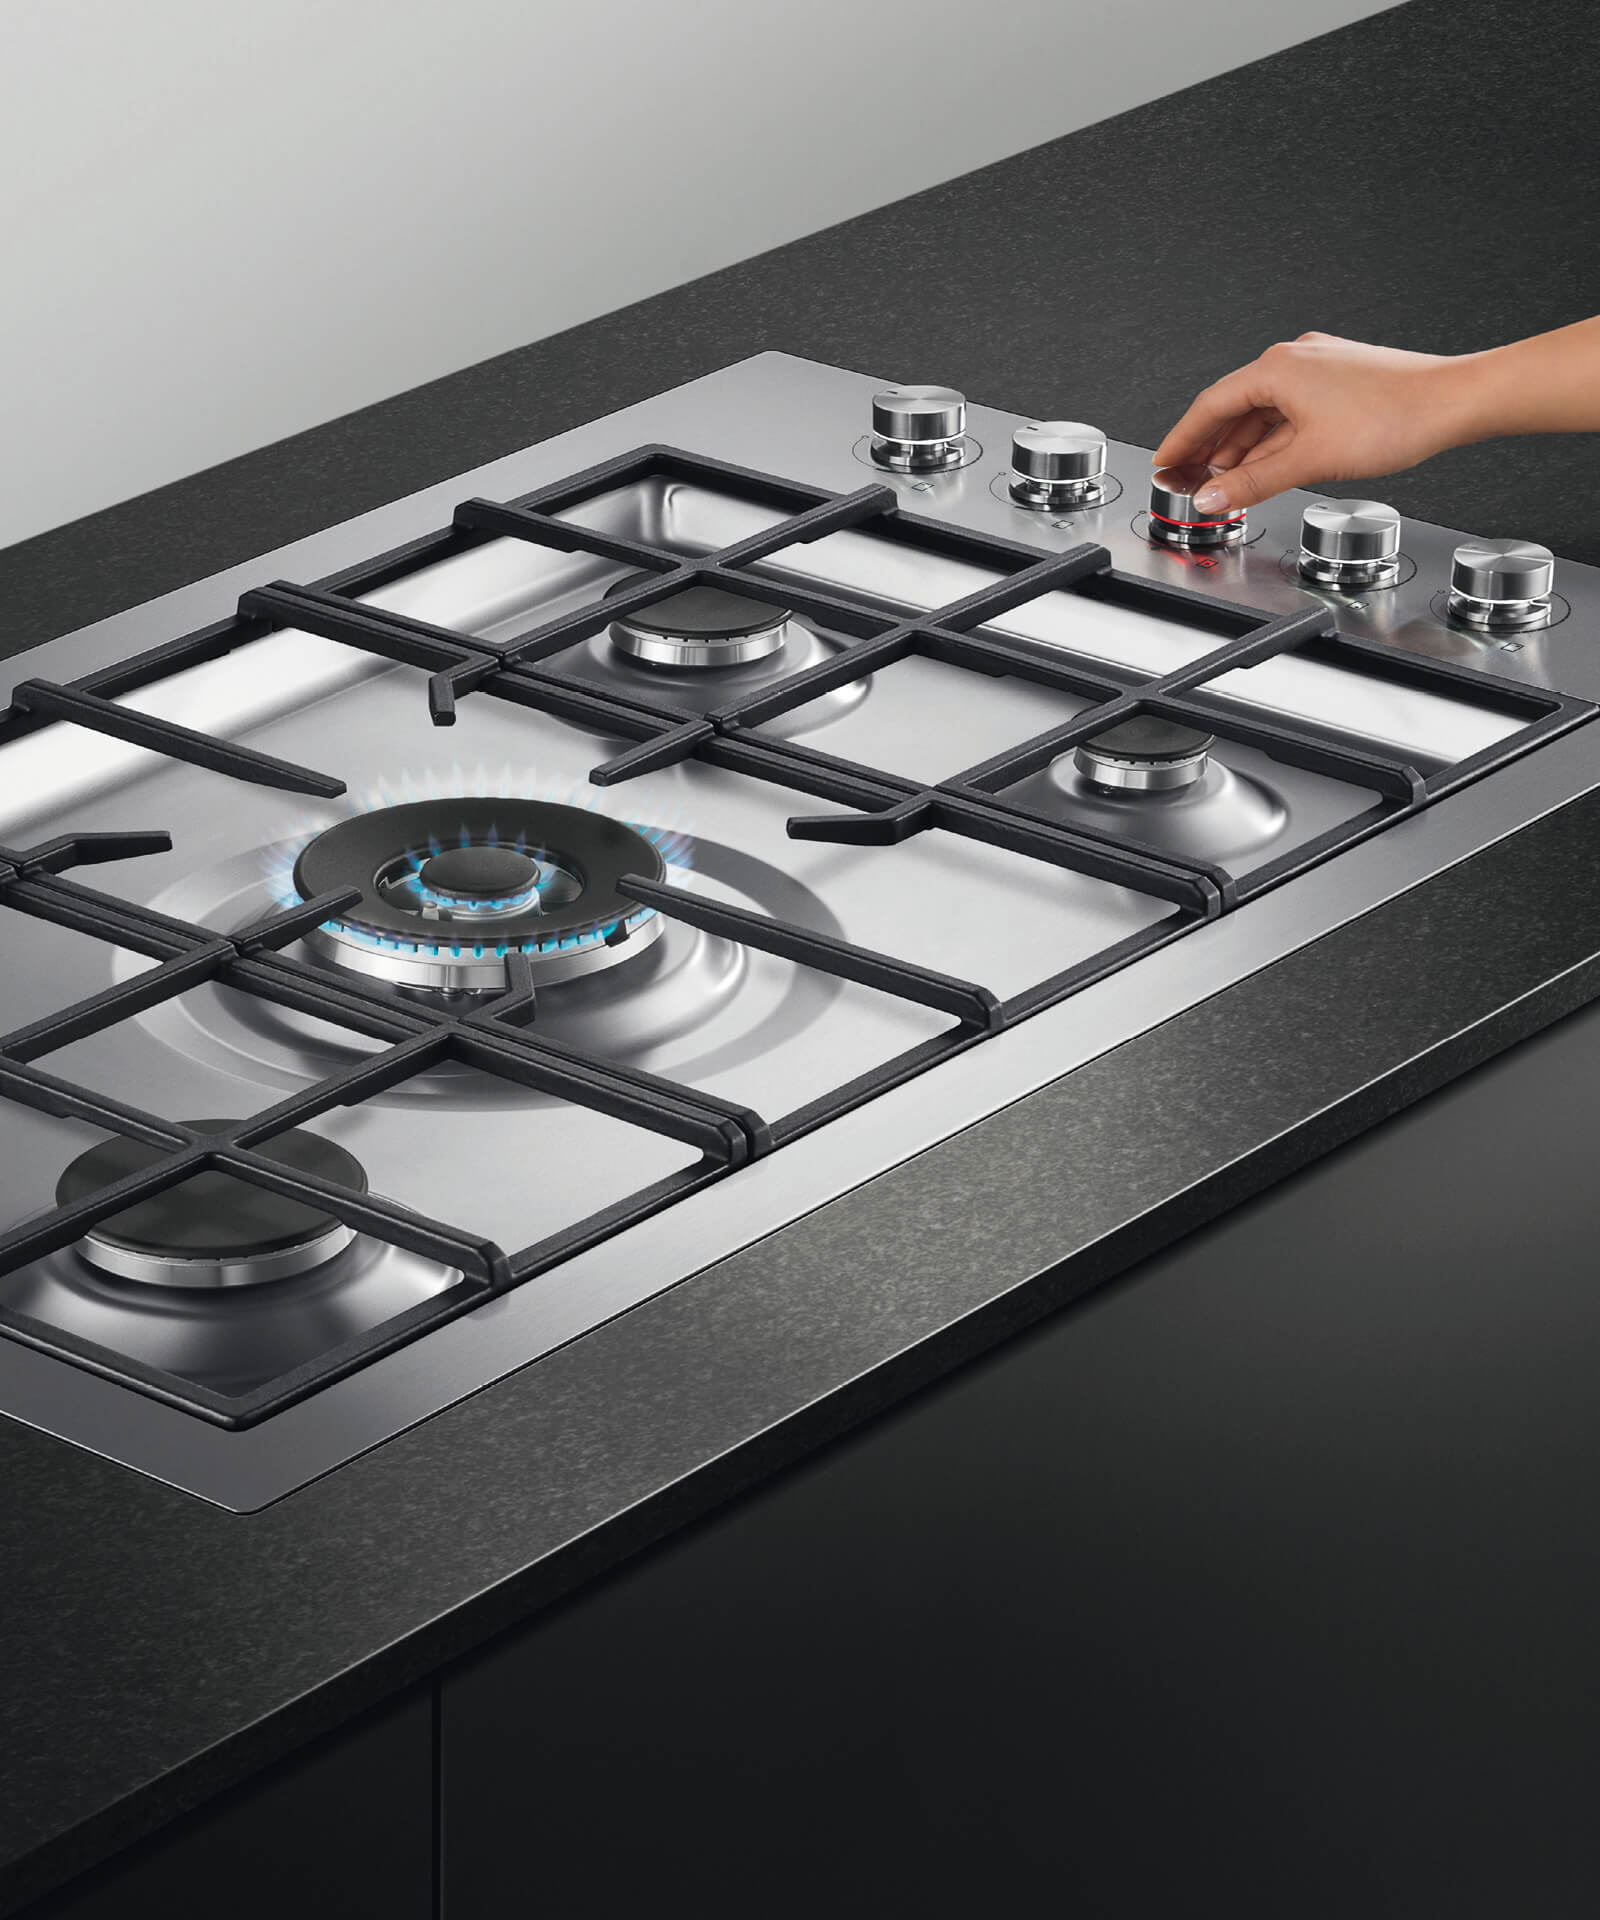 5 Burner Gas Cooktops: 90cm Flush Gas On Steel Cooktop